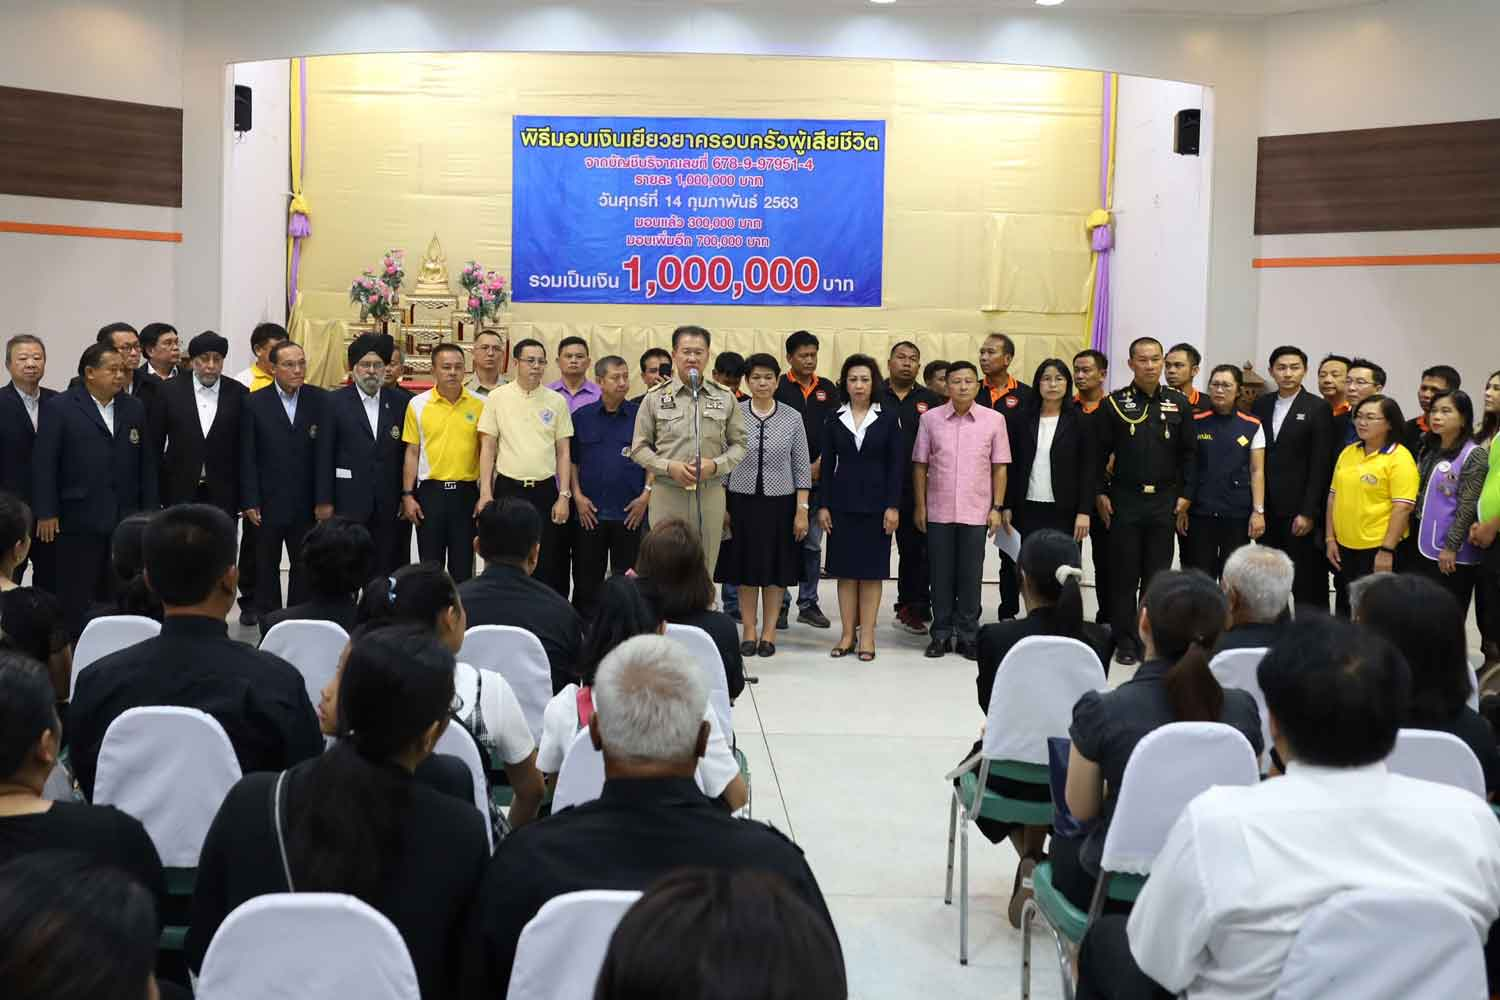 Nakhon Ratchasima governor Wichian Chantaranothai, standing centre, presides over a ceremony on Feb 14 to give an initial sum of assistance money to relatives of the victims of the Feb 8-9 Korat mass shooting. (Photo by Prasit Tangprasert)